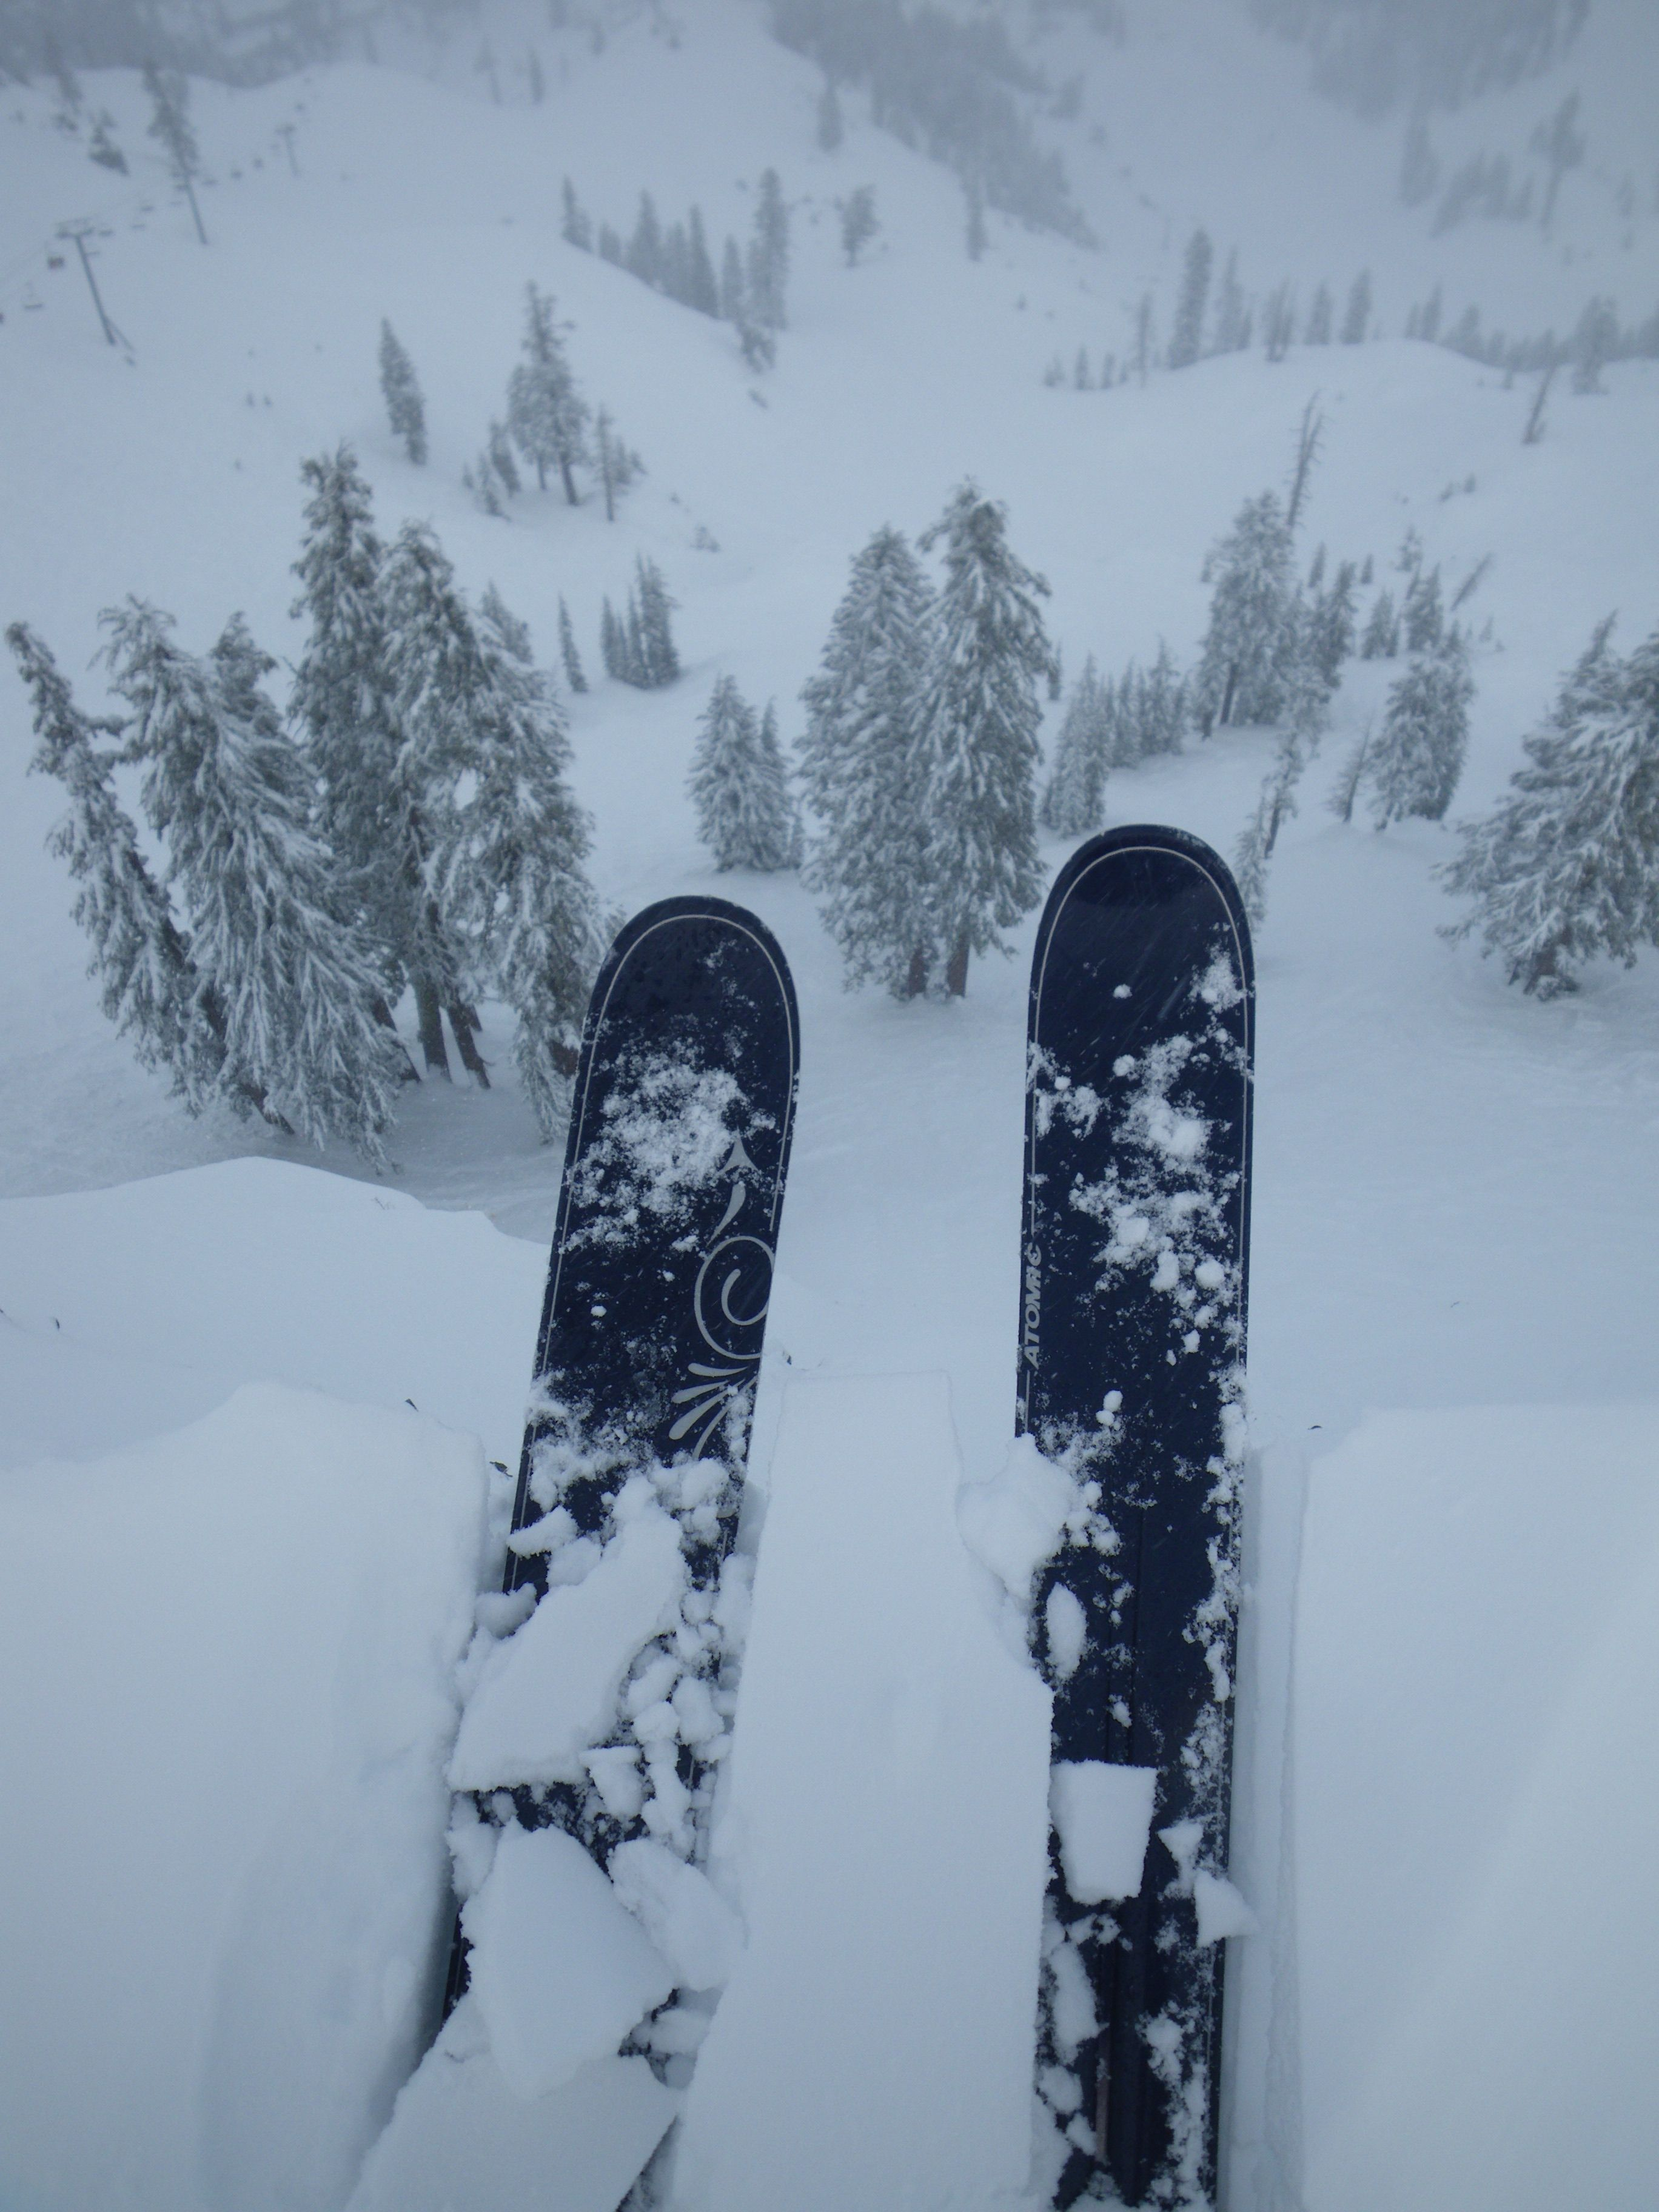 Dropping in 3, 2,1  #snow #ski